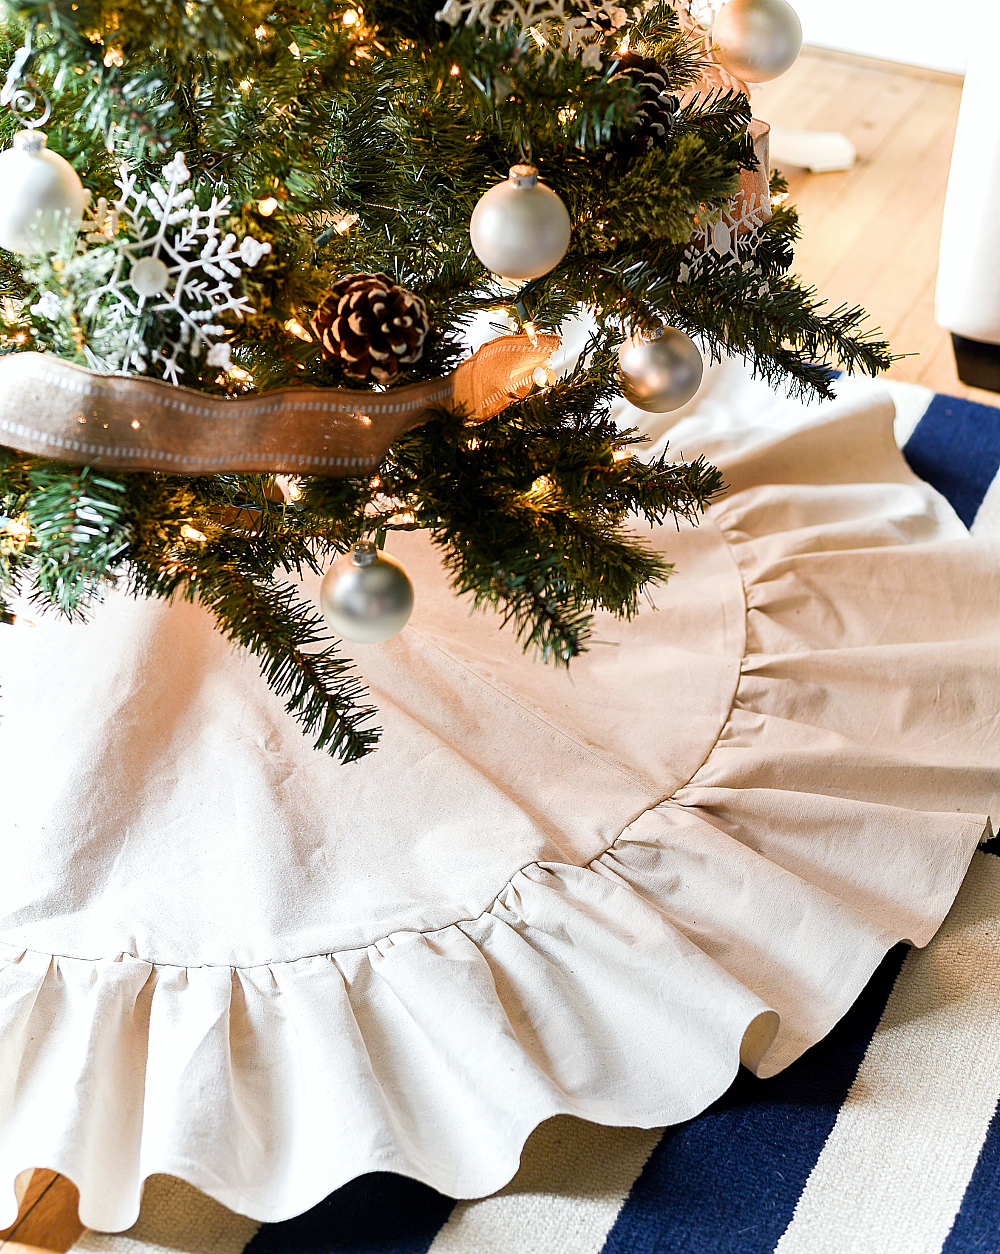 How To Make a Drop Cloth Ruffle Christmas Tree Skirt